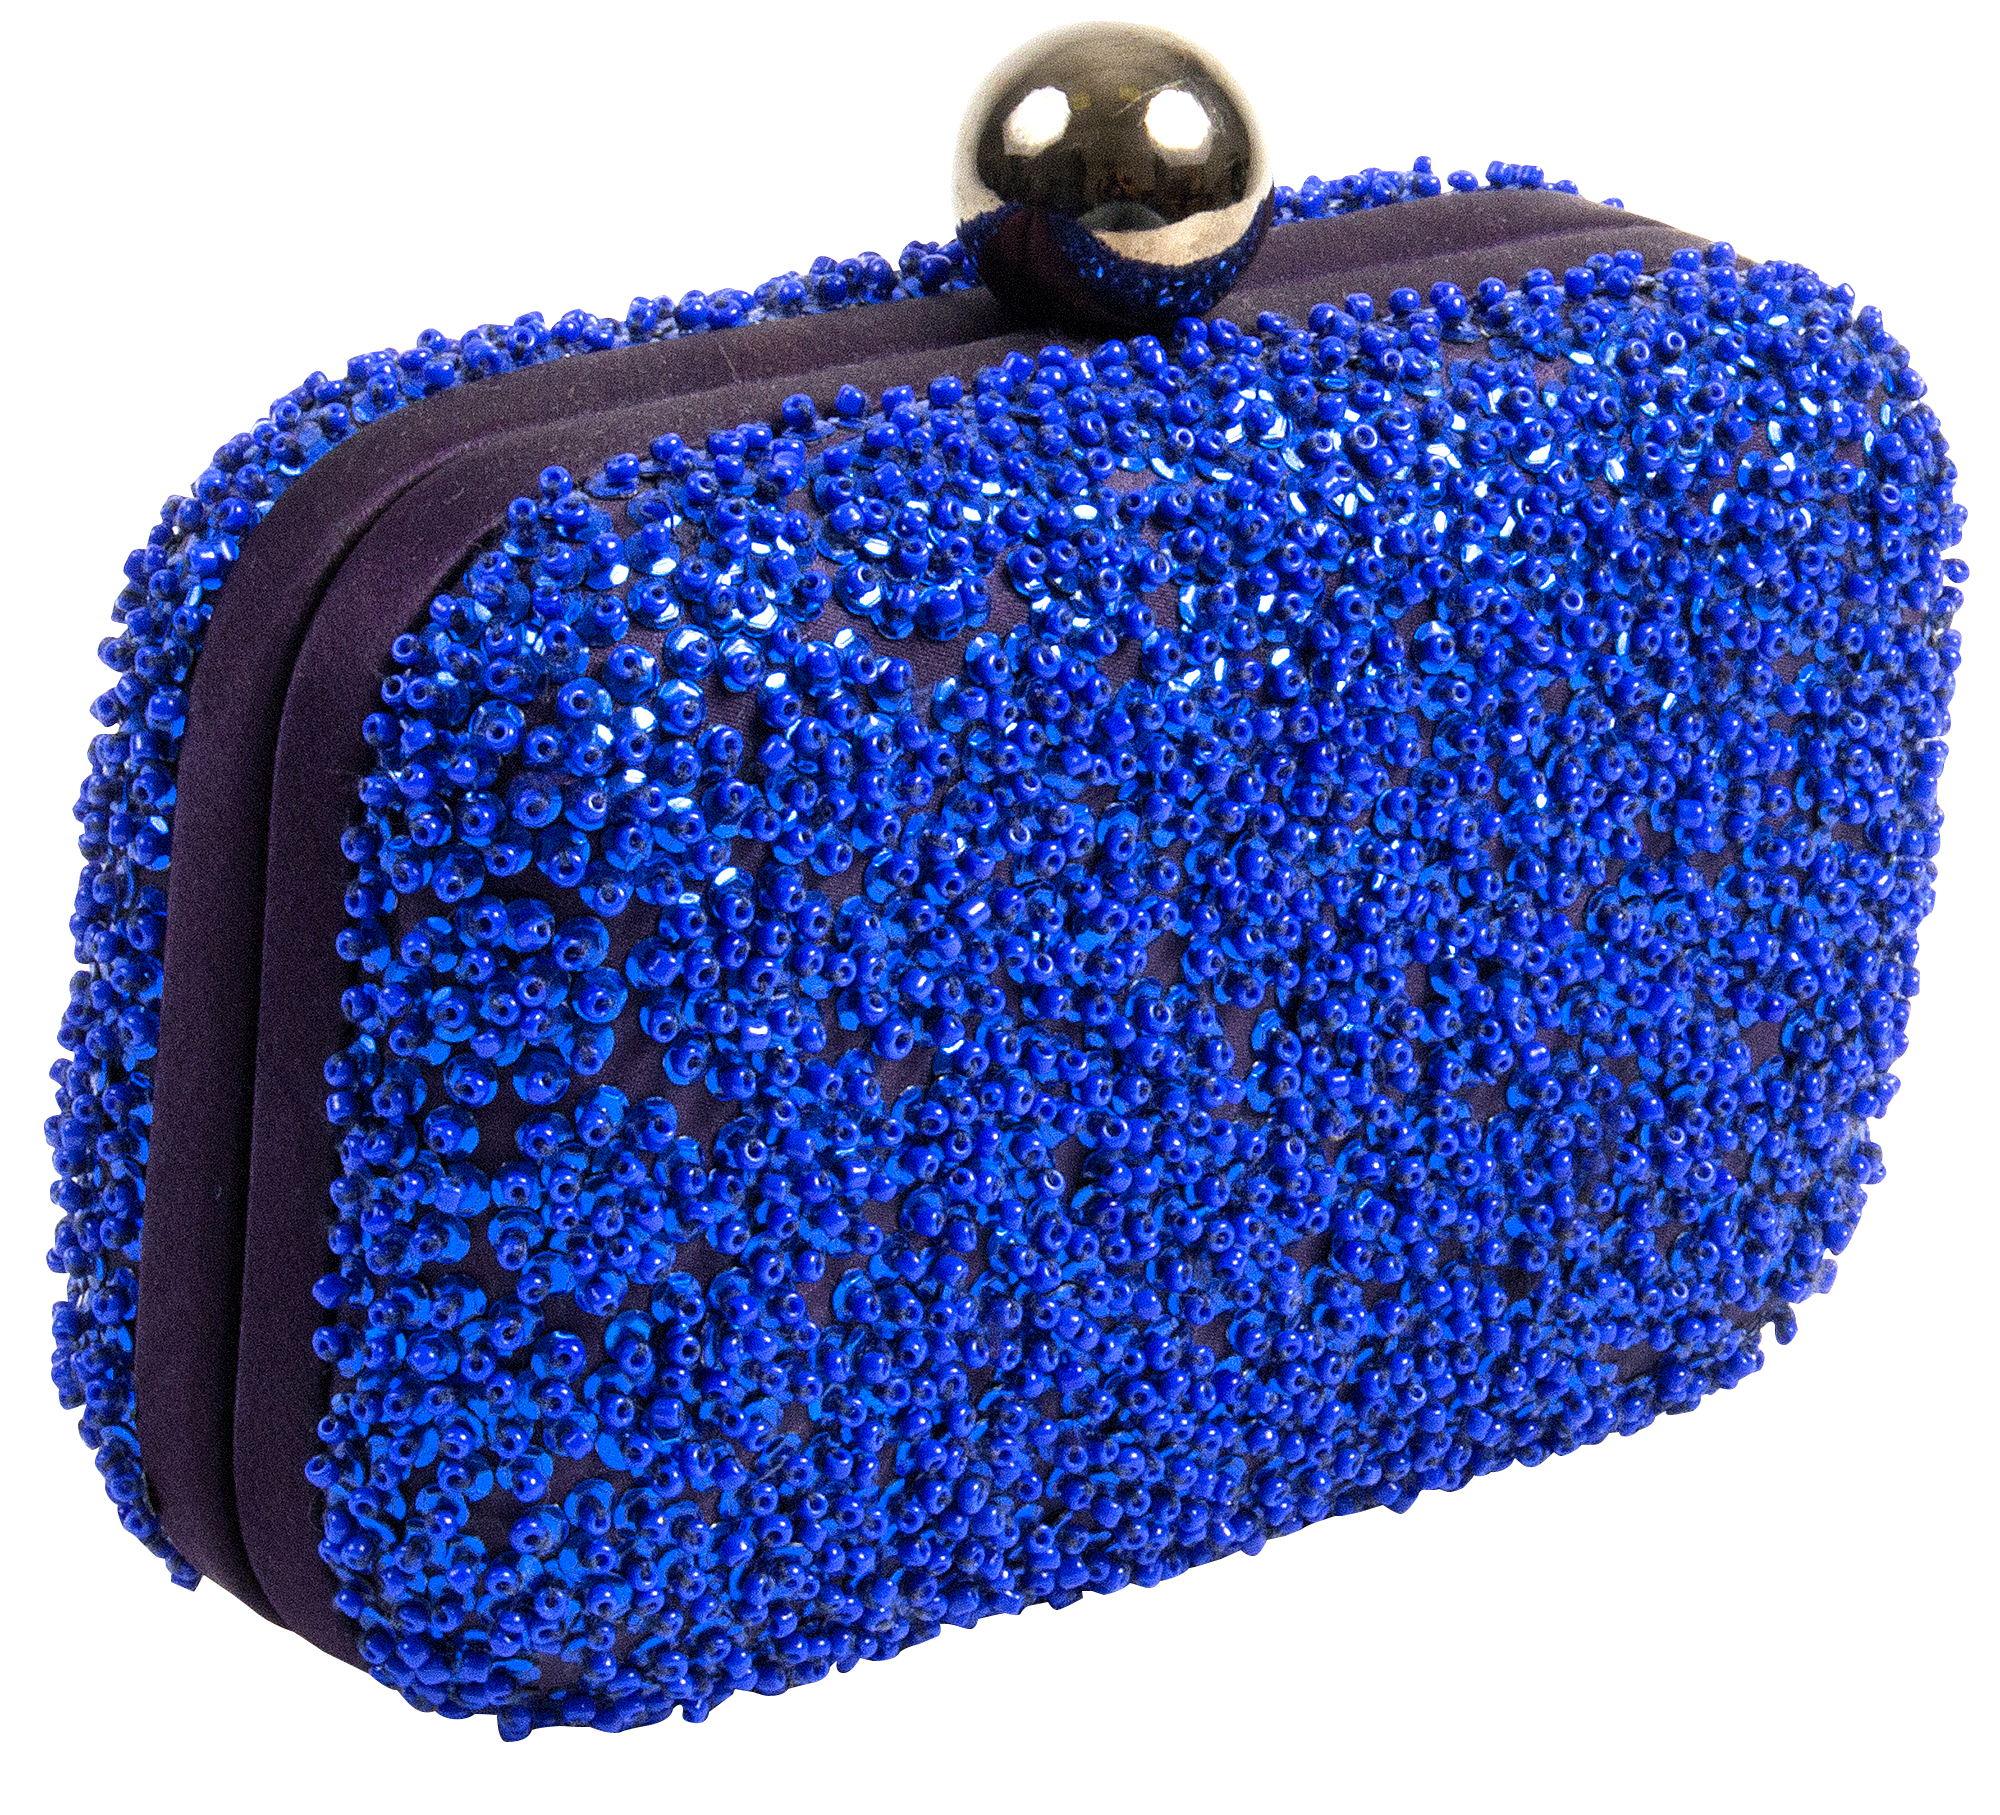 Santi evening bag, $245 at Gwynn's of Mount Pleasant